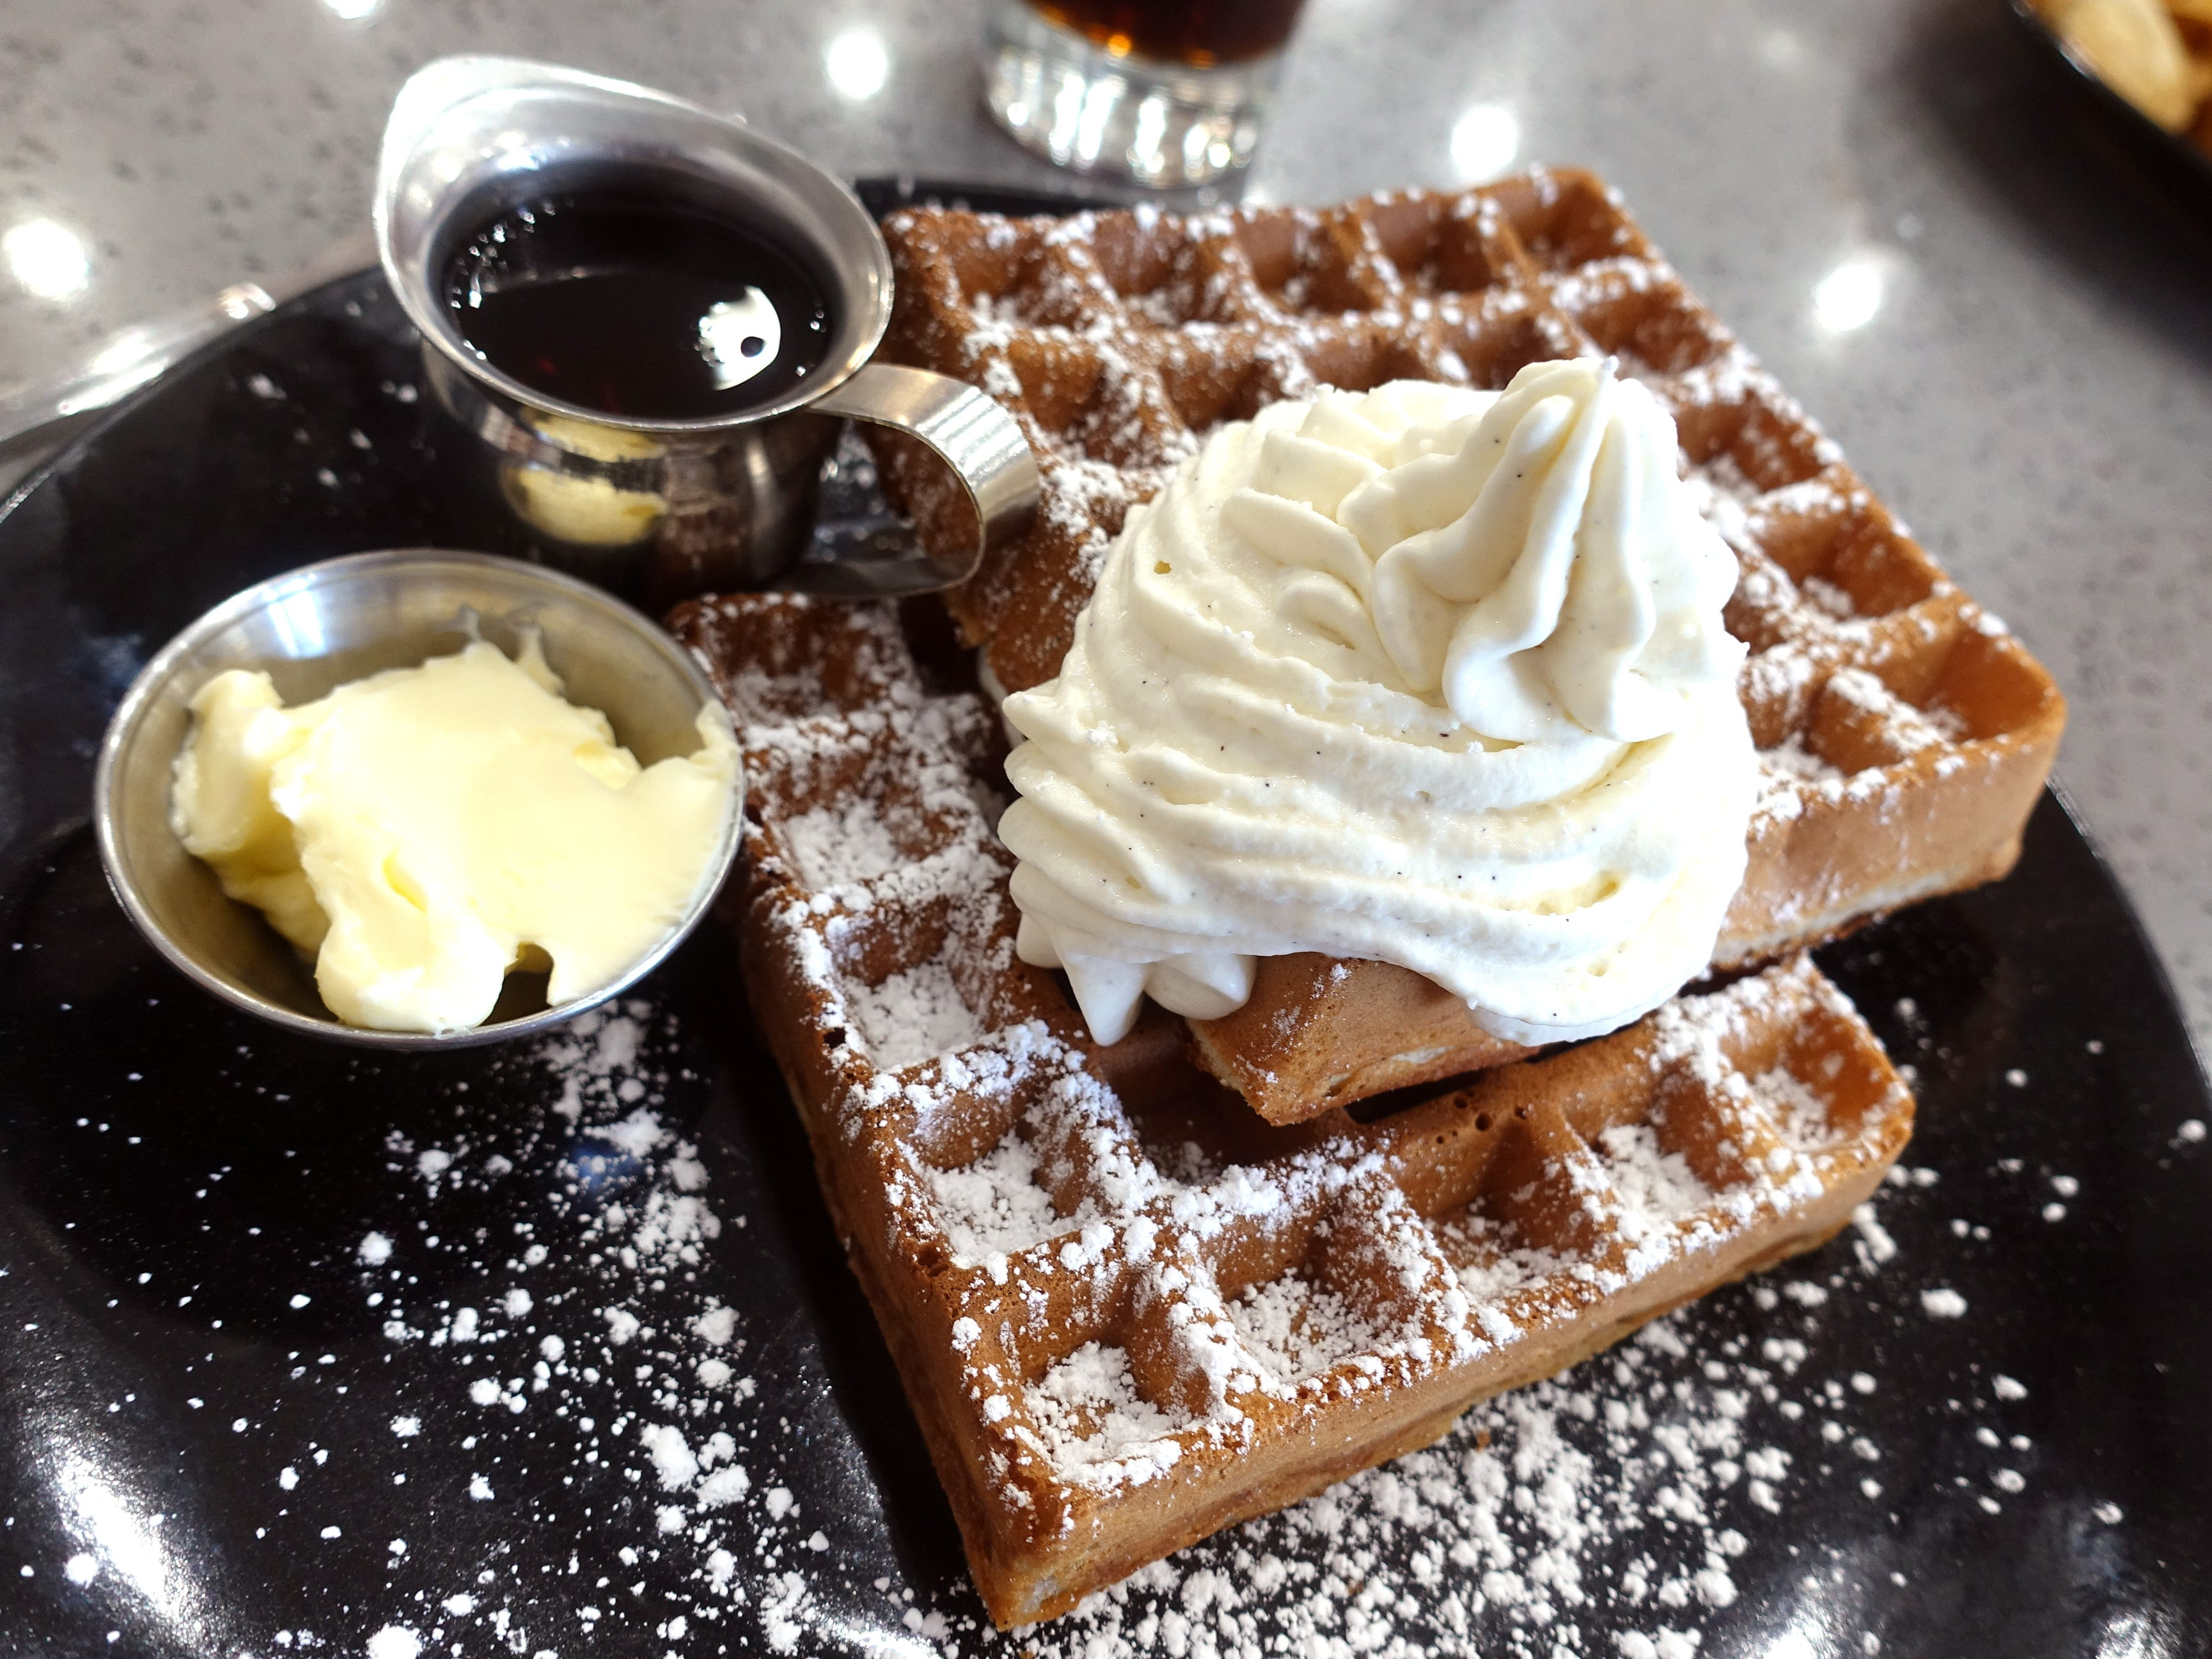 Belgian waffles dolloped with vanilla bean whipped cream at Sweetest Season Artisan Eatery in Tempe.